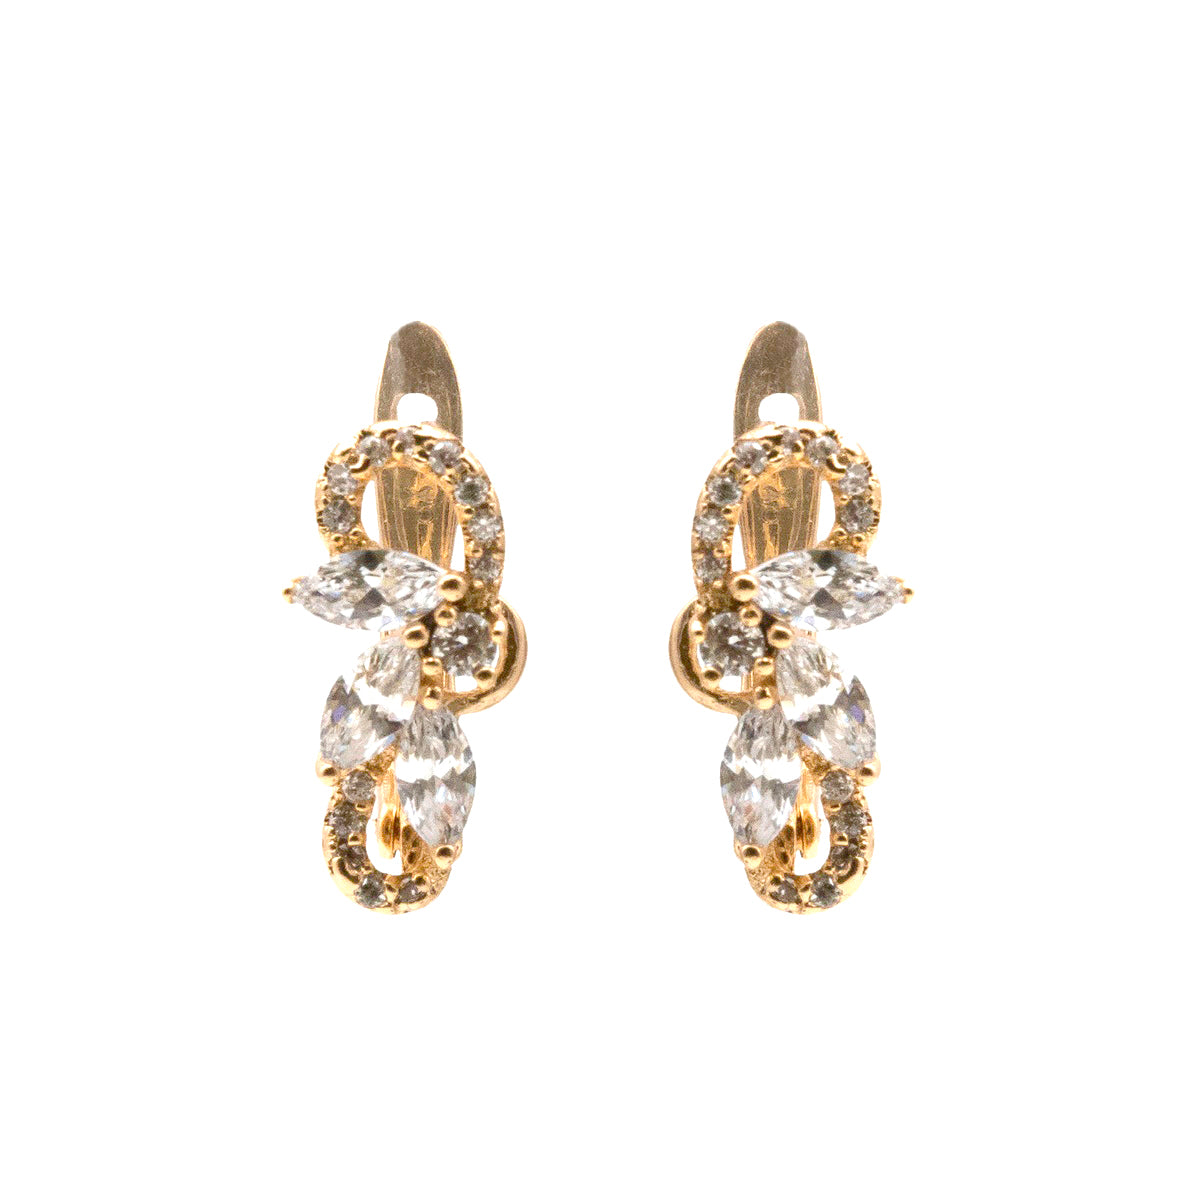 Crystal Embellished Stud Earrings - Kiyara